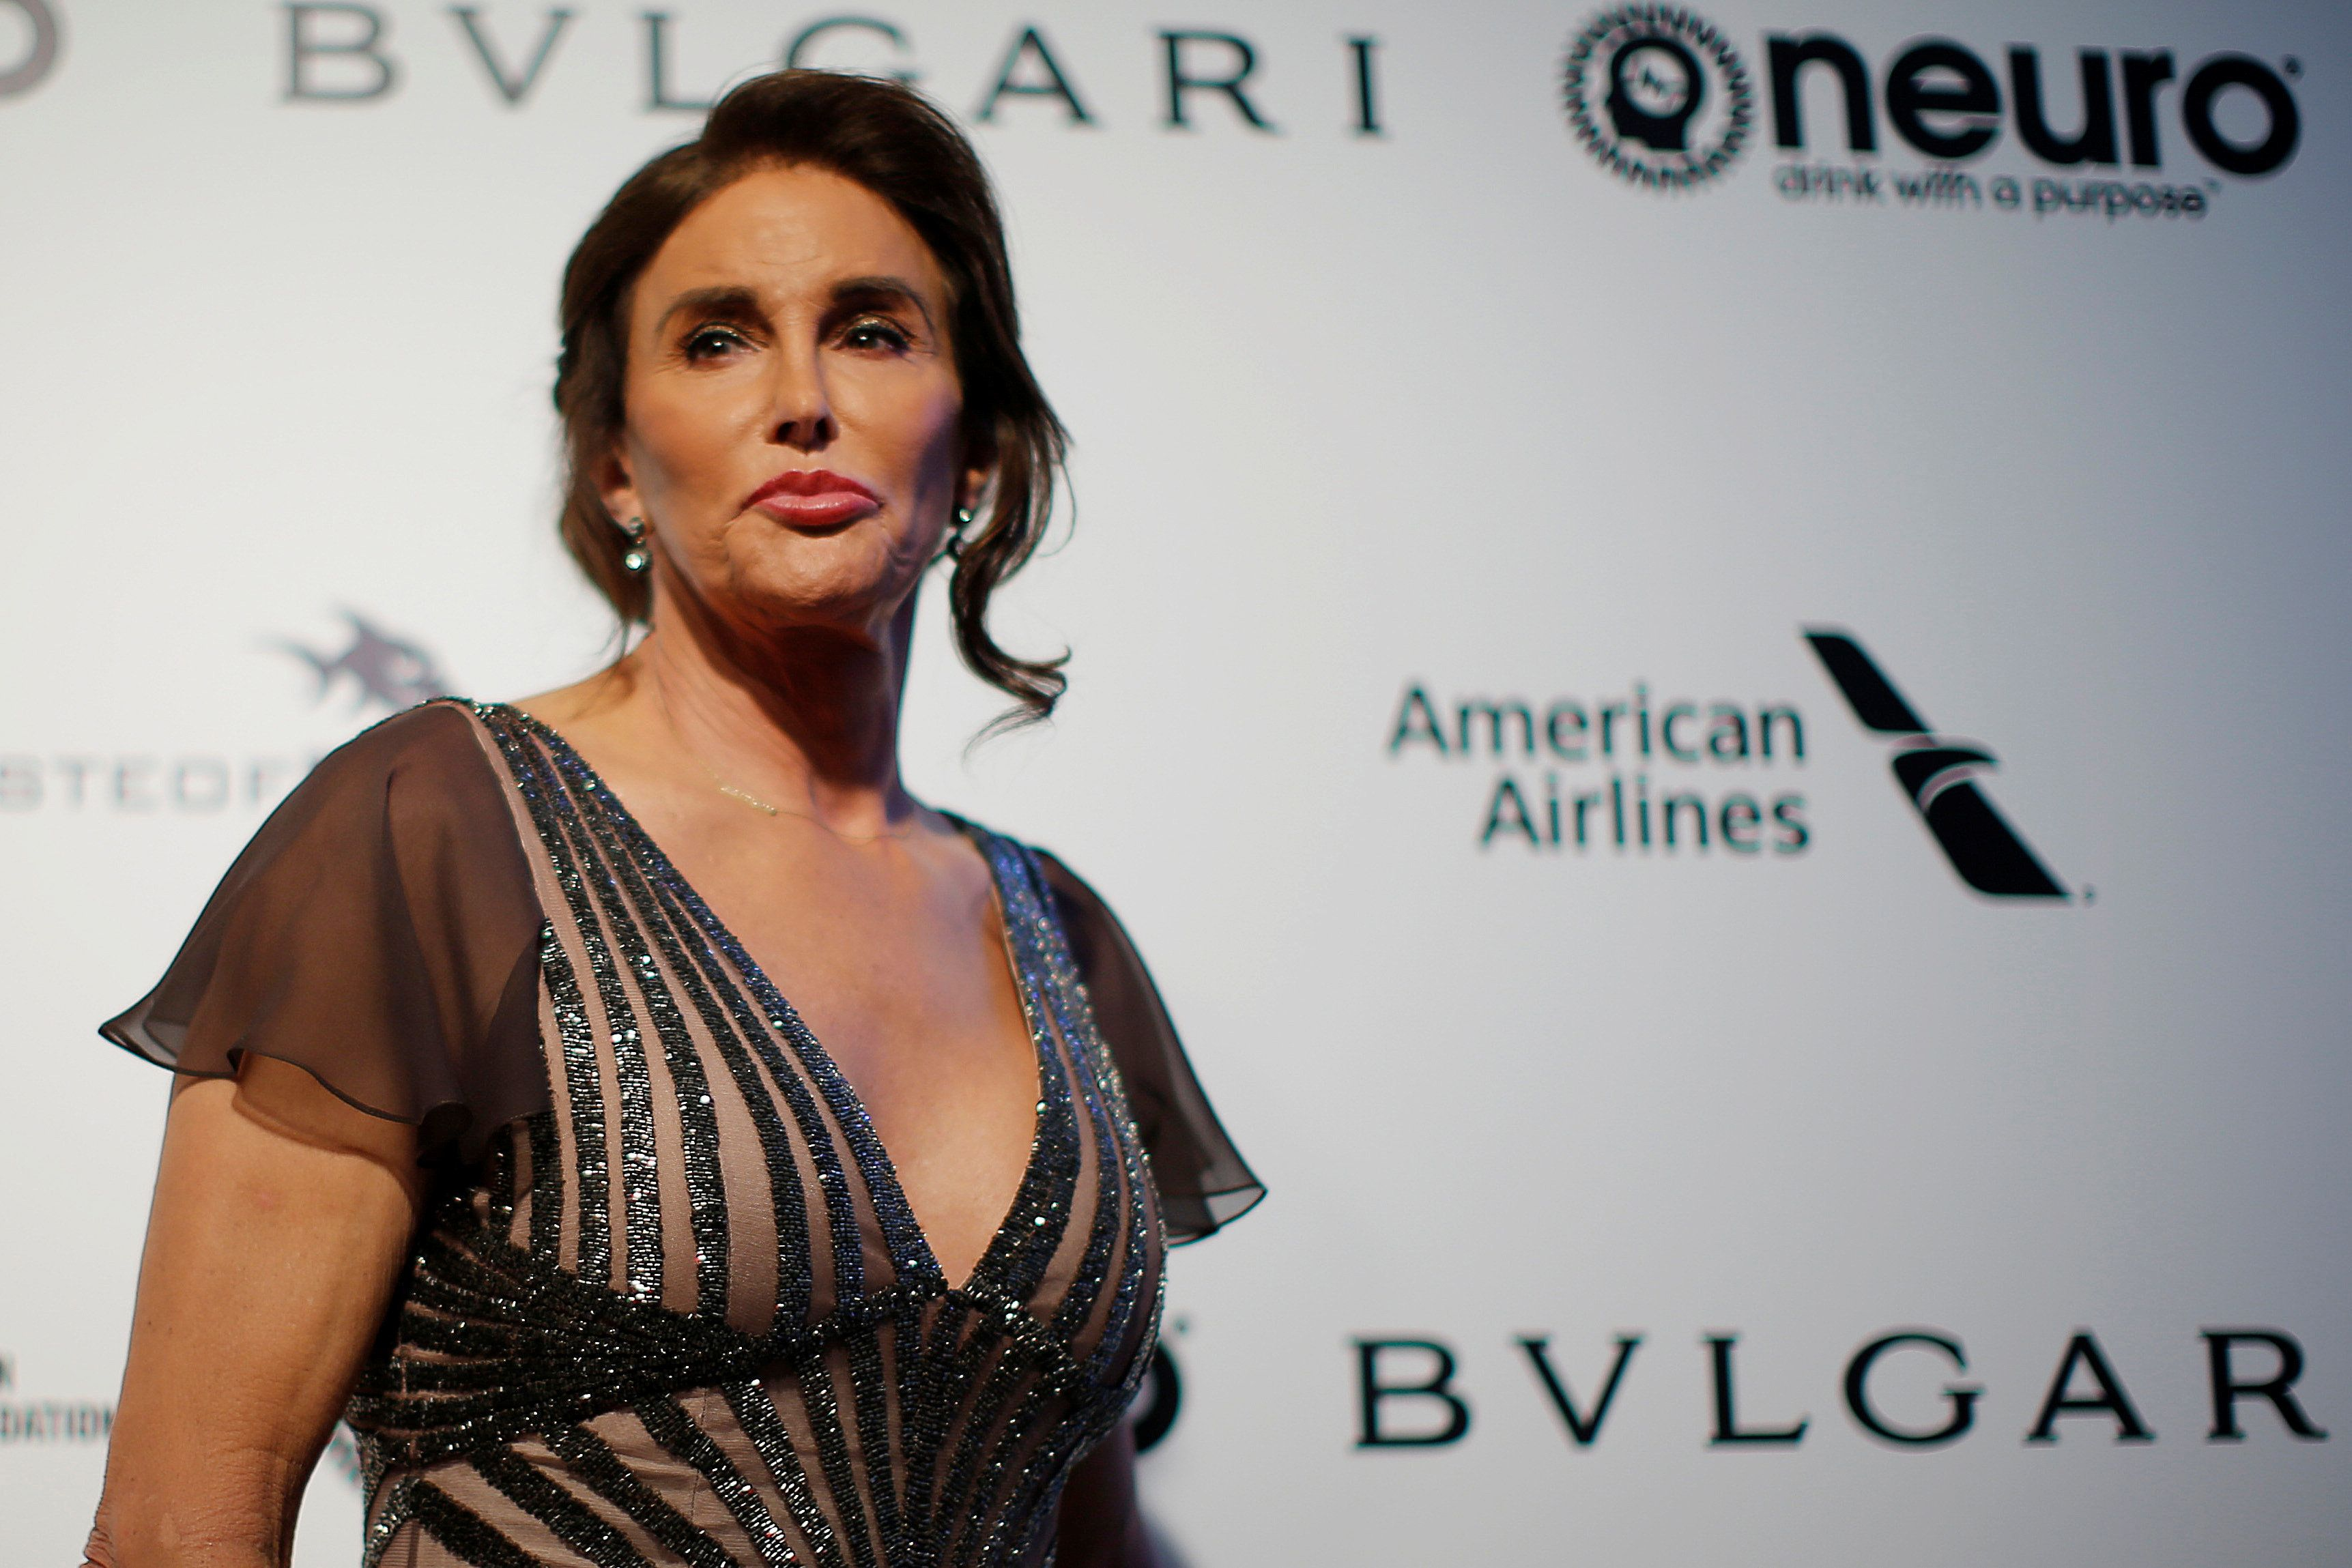 Caitlyn Jenner poses for photographers at the 2017 Elton John AIDS Foundation Academy Awards Viewing Party in Los Angeles, California, U.S., February 26, 2017.   REUTERS/Brian Snyder